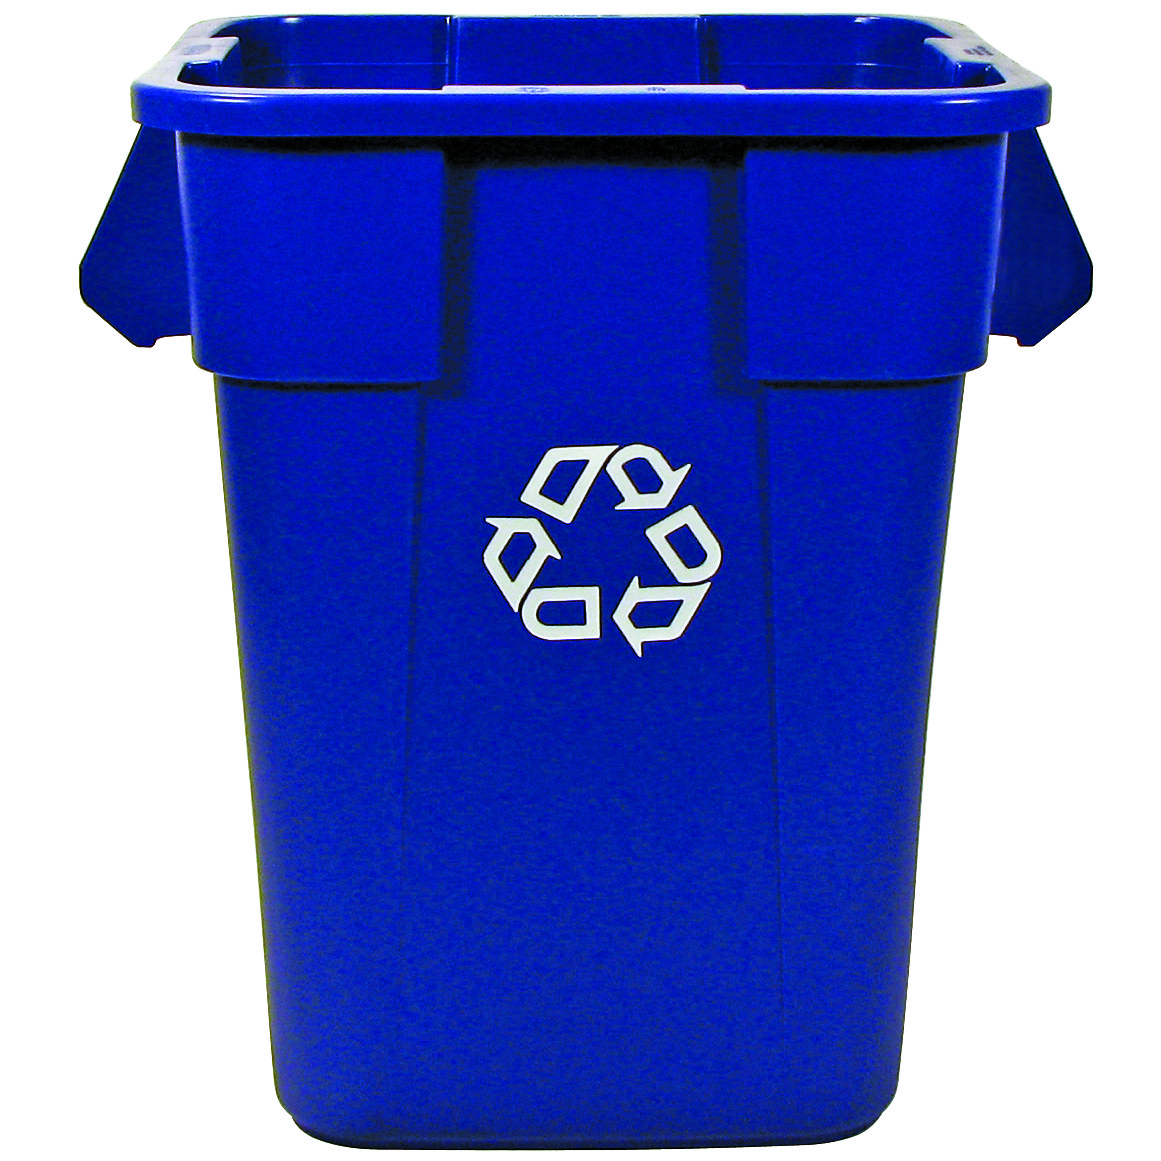 Rubbermaid 40 gallon brute square blue recycling container 3536 73 trash cans warehouse - Recycle containers for home use ...